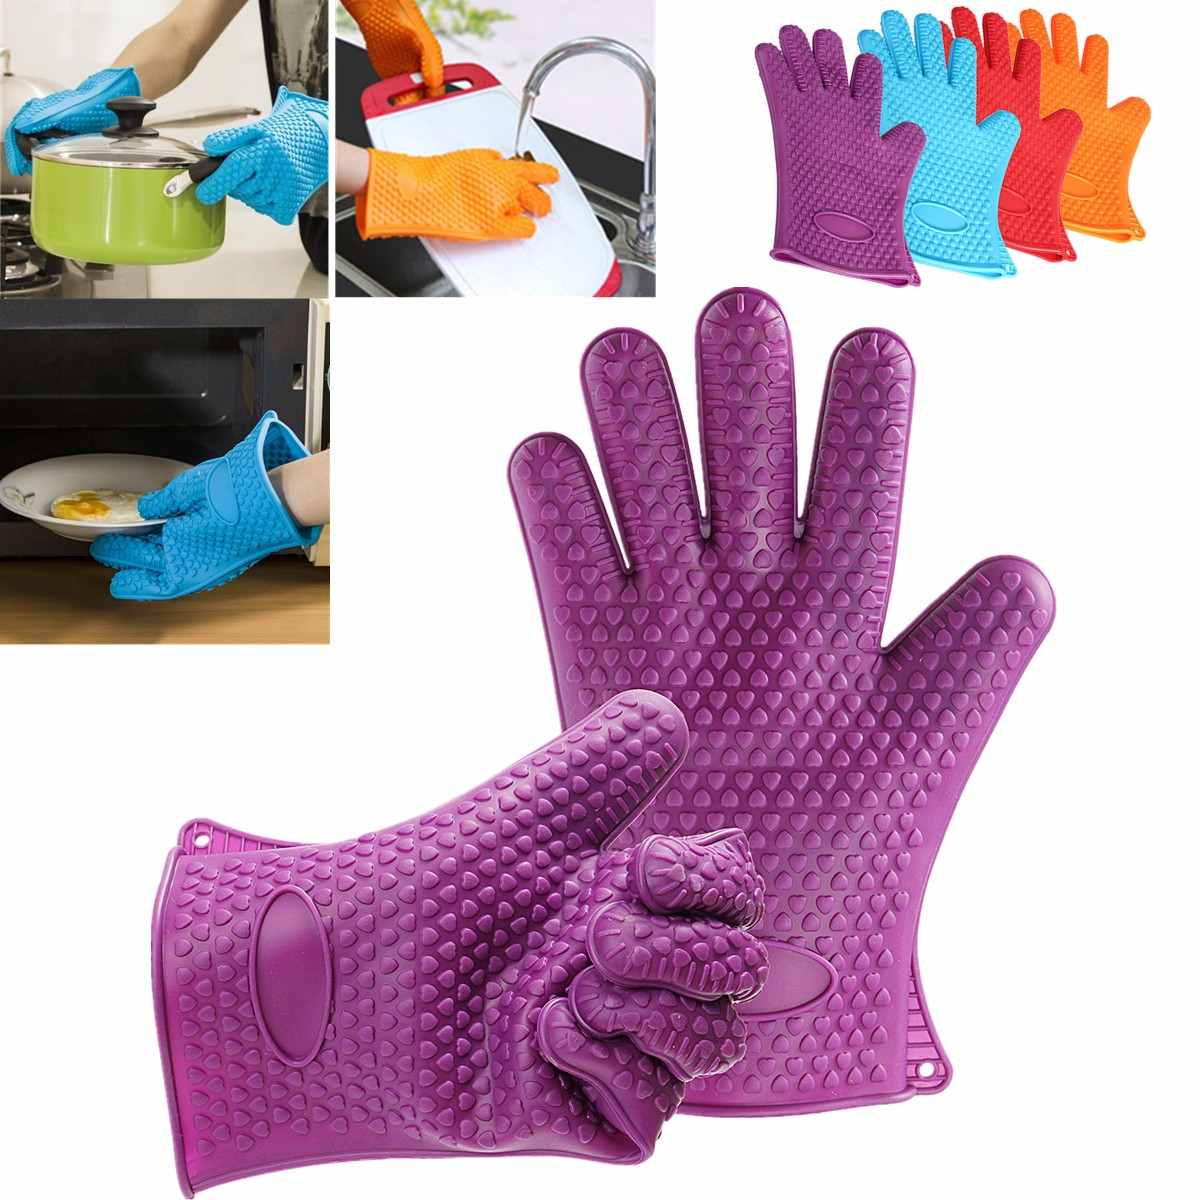 1 Pair food grade Heat Resistant Silicone Kitchen barbecue oven glove Cooking BBQ Grill Glove Oven Mitt Baking Protective gloves 1 pair free shipping aramid fire insulation gloves heat resistant glove 932f bbq glove oven kitchen glove direct supply